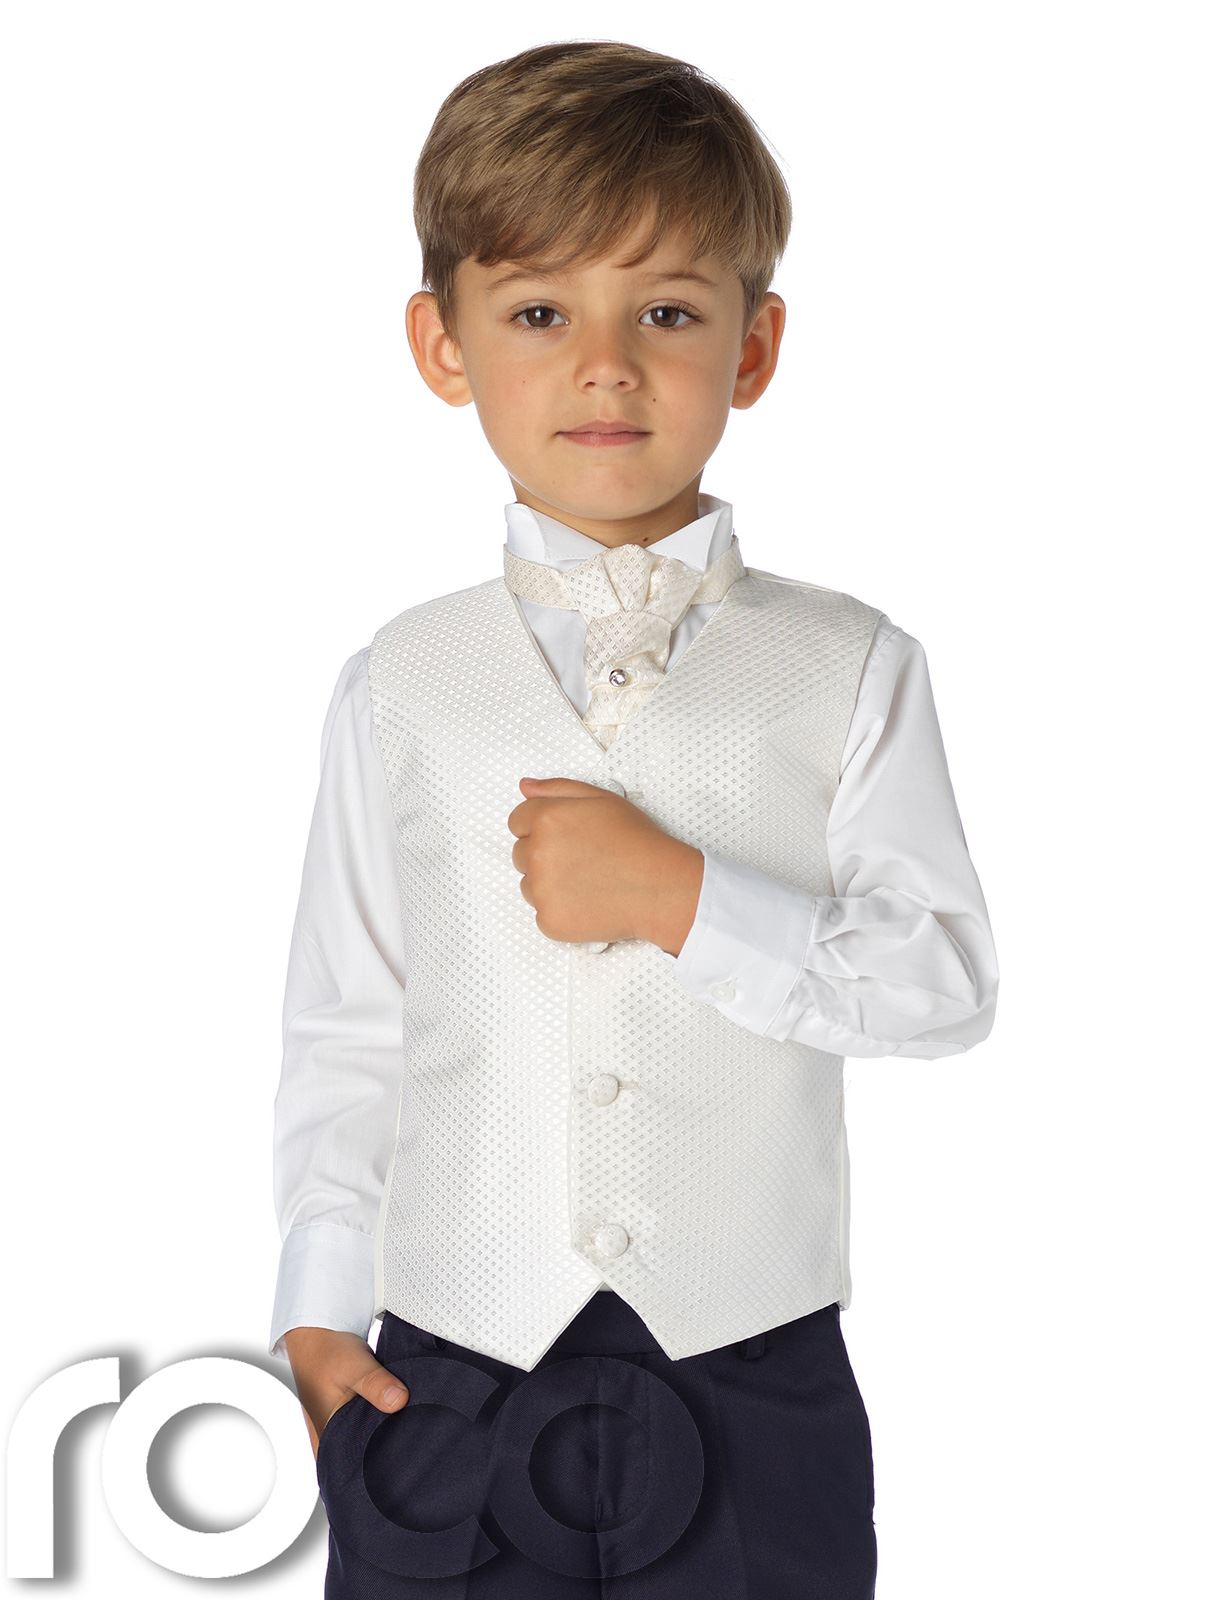 Boys black waistcoat set 'Vincent'. Boys formal waistcoats, available from months - 16 years. More boys formal wear at manga-hub.tk